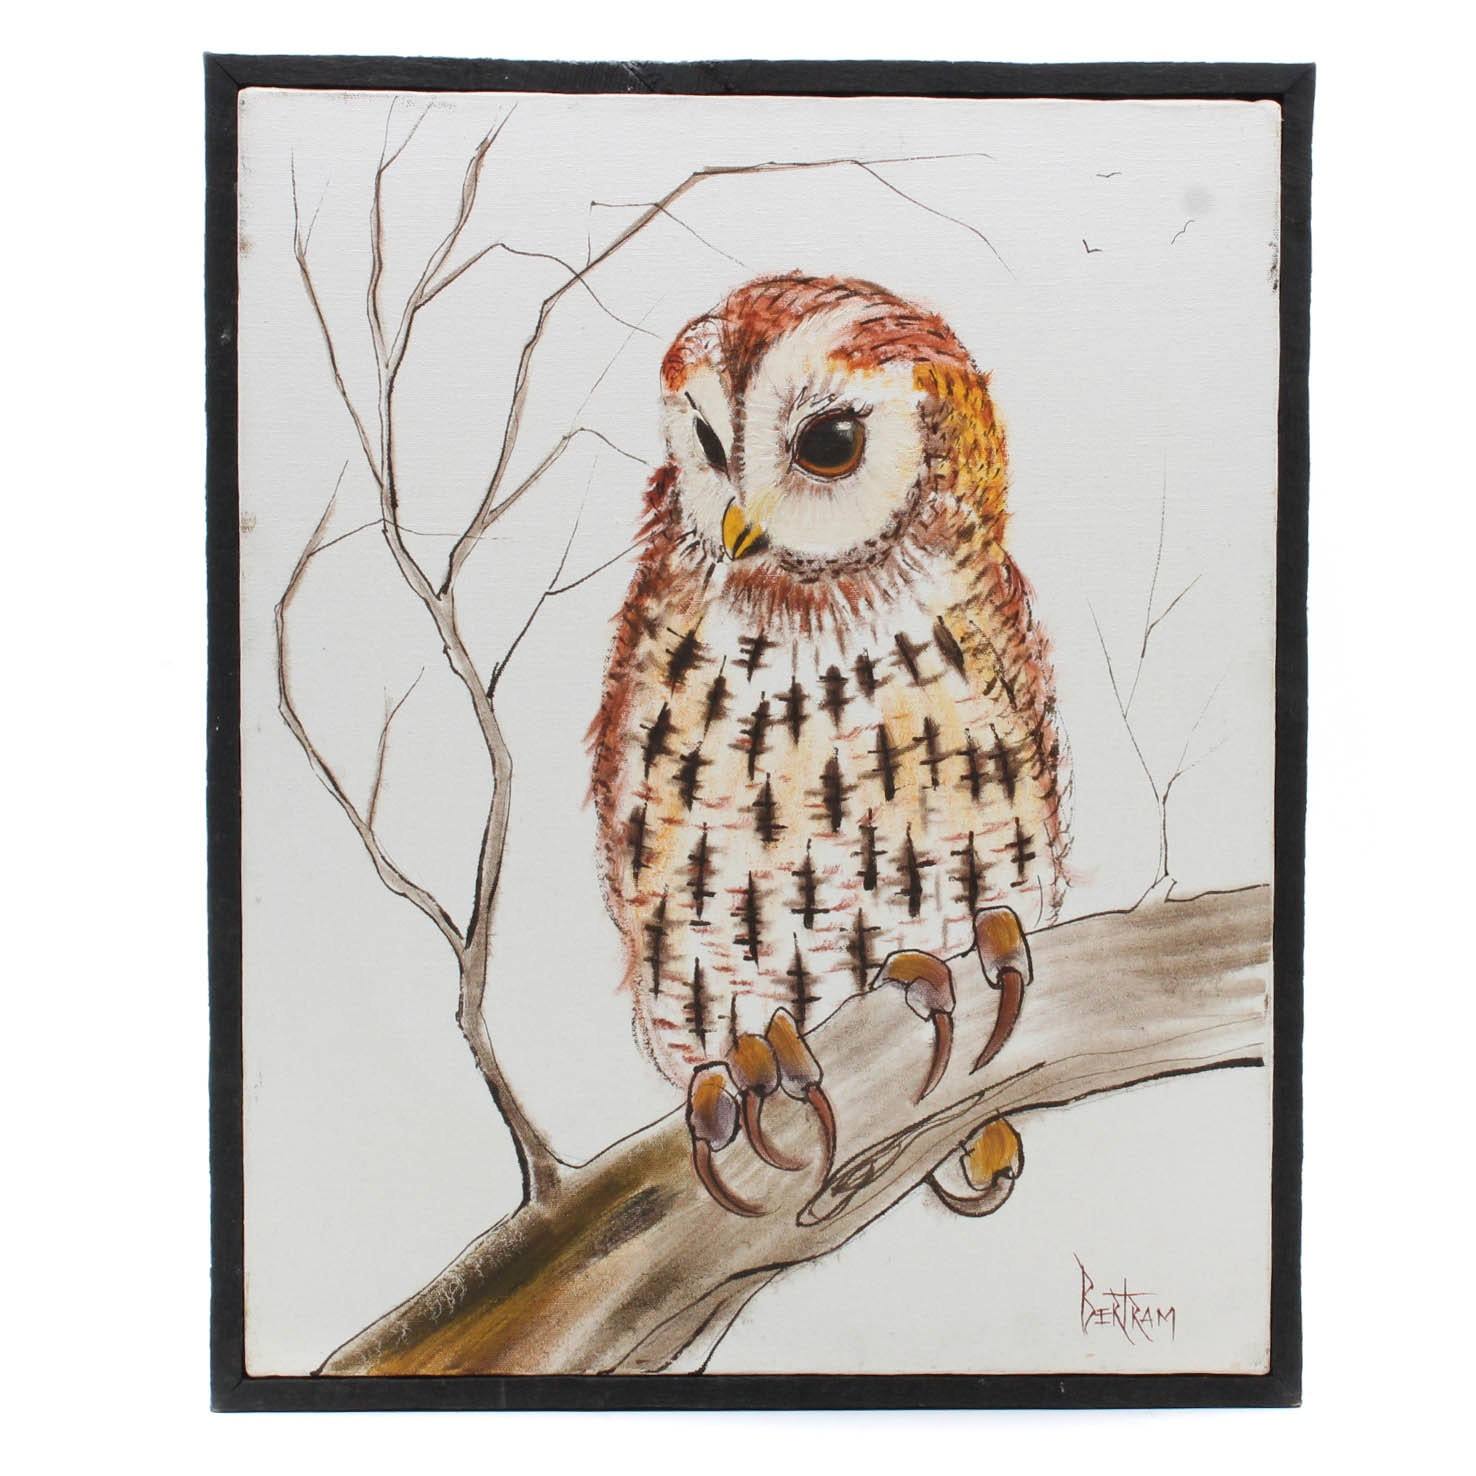 Vintage Bertram Oil Painting of Owl